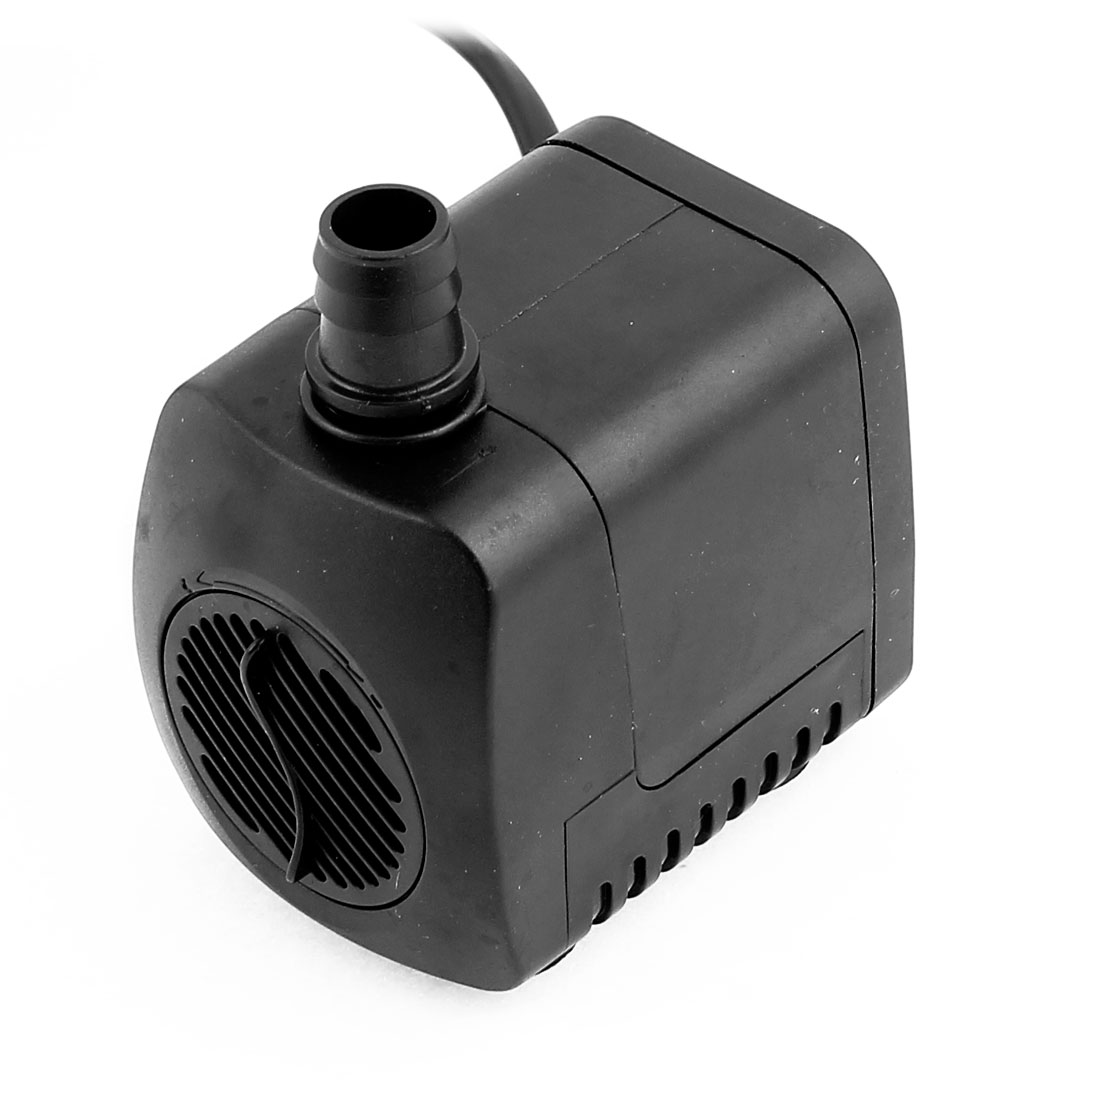 AC 220V-240V AU Plug 10W Electric Mini Submersible Water Pump for Aquarium Fish Tank Fountain Pond